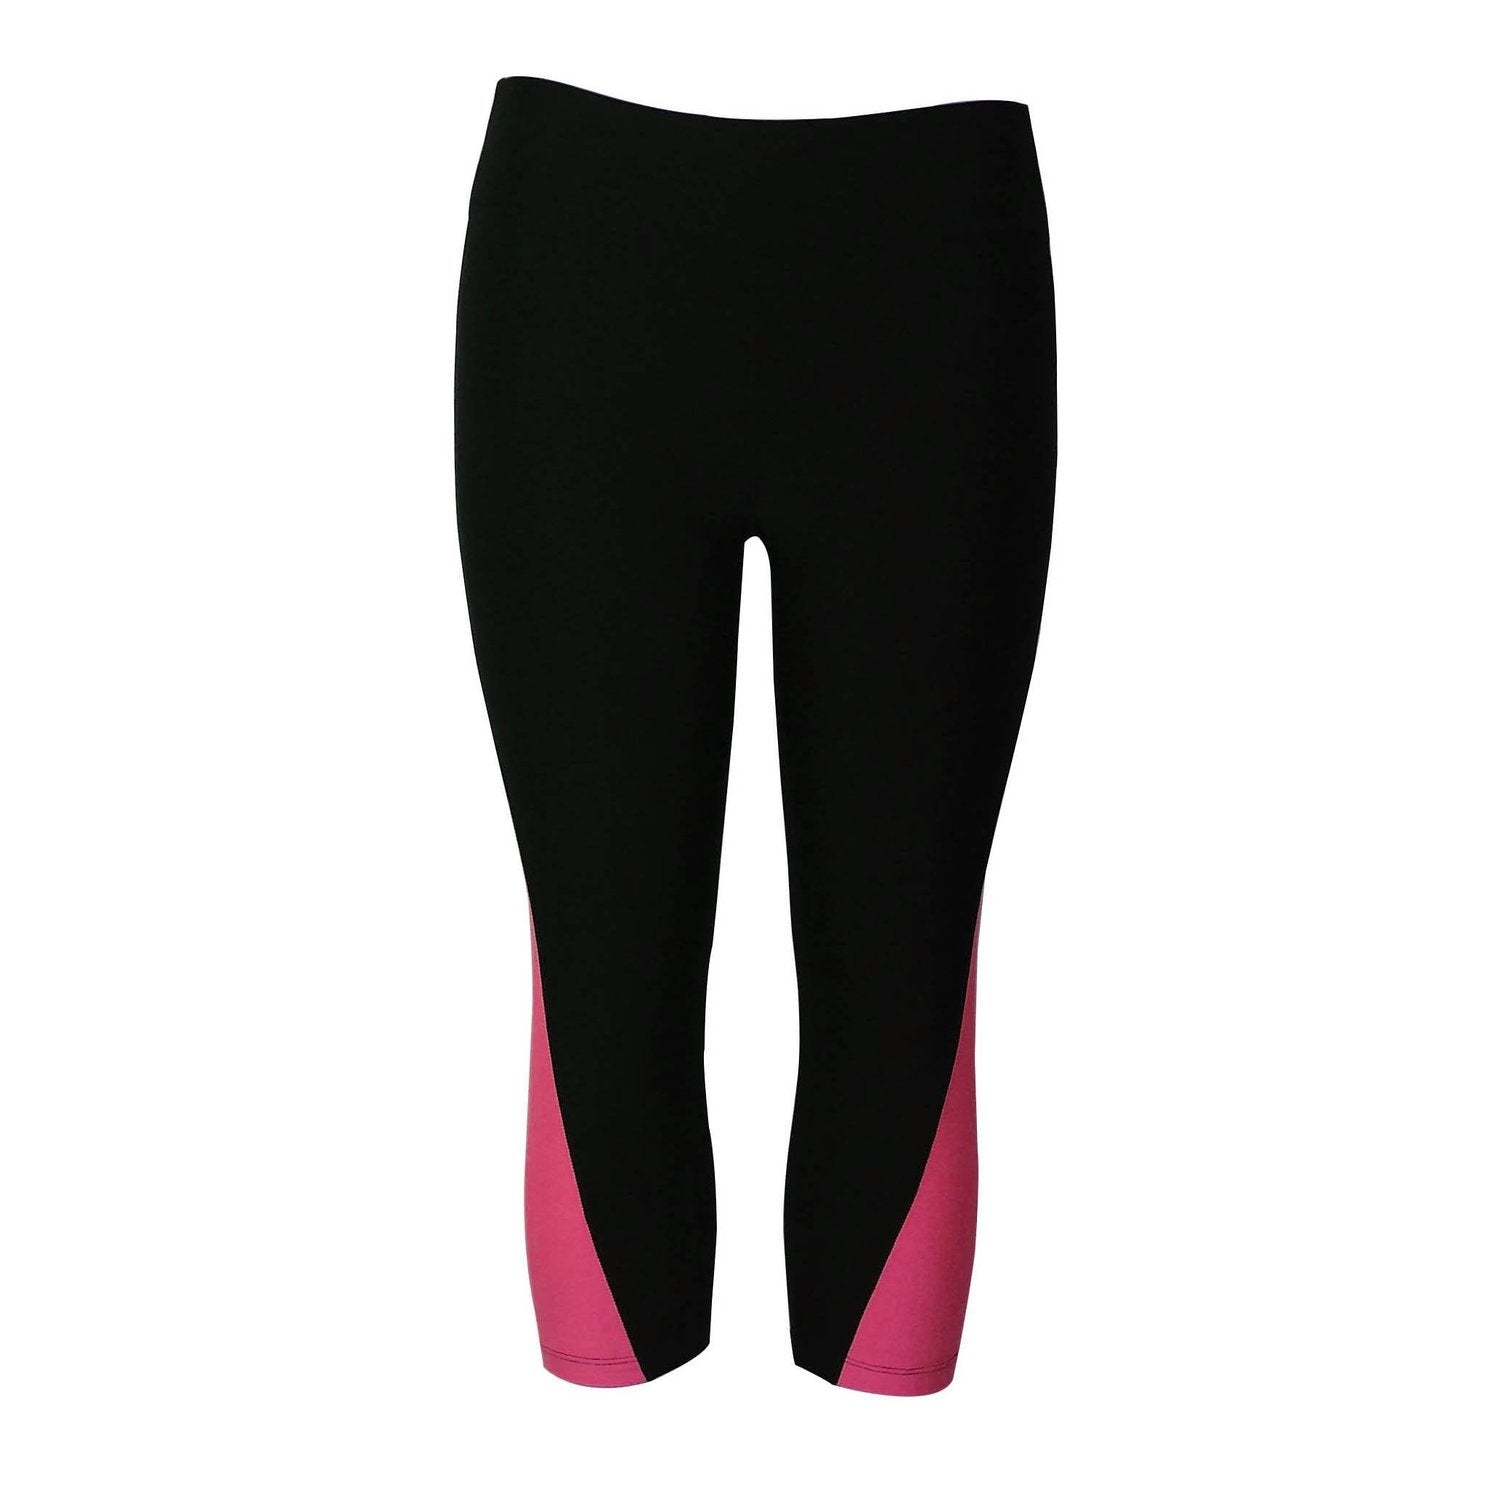 2951f791f2ac5 Shop Women's Athletic Fitness Sports Yoga Pants Capri Small-Medium/ Black-Pink - On Sale - Free Shipping On Orders Over $45 - Overstock -  12355409